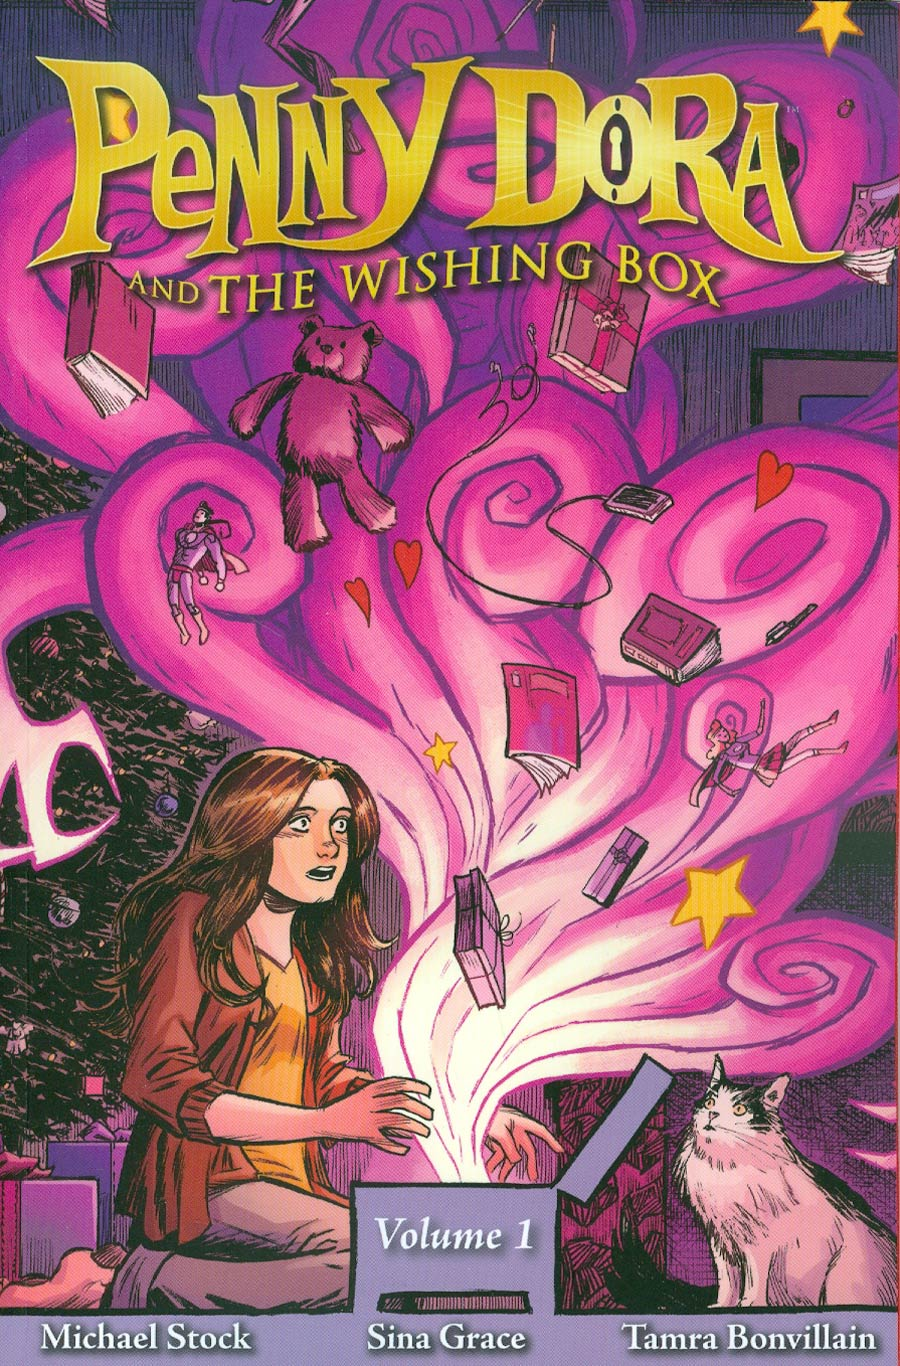 Penny Dora And The Wishing Box Vol 1 TP